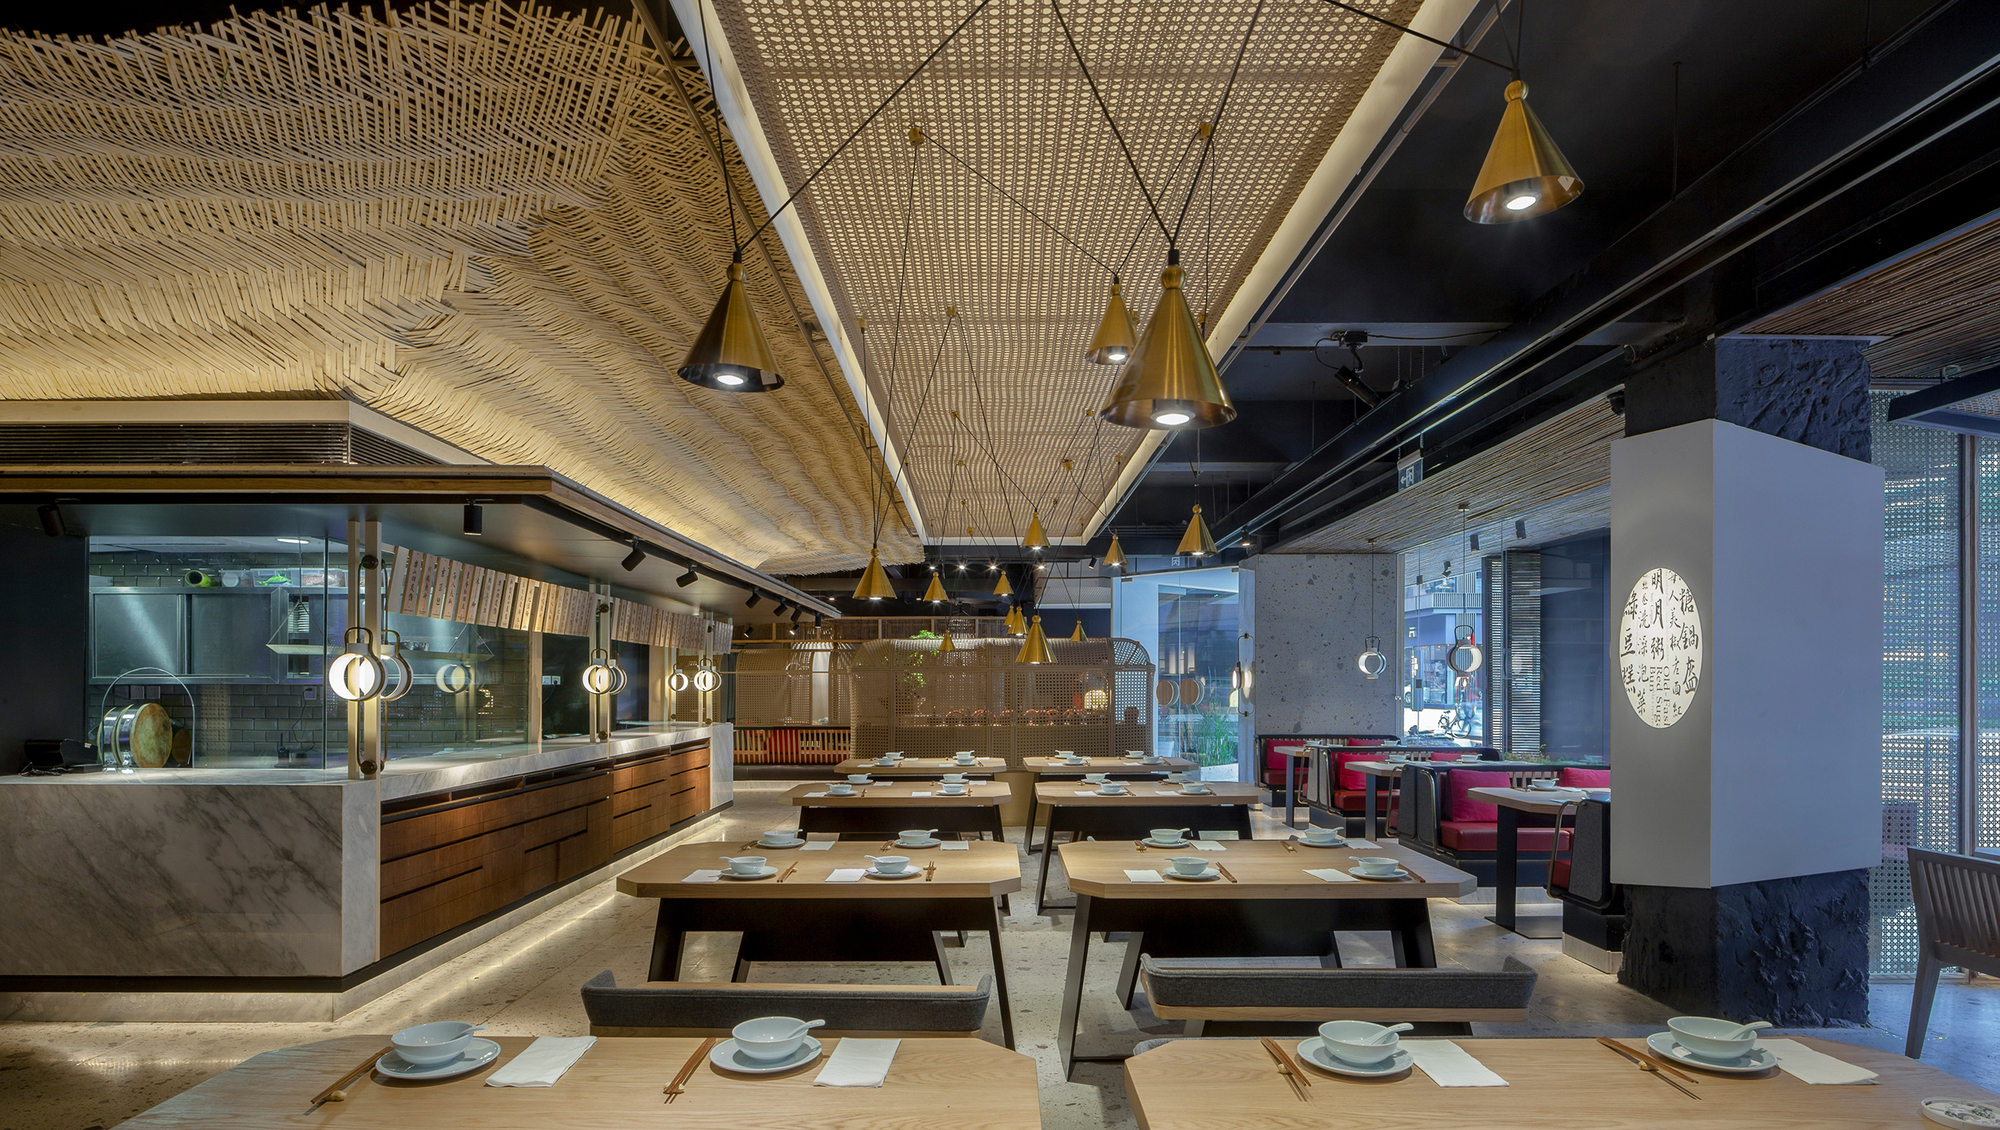 Mas Kitchen Chengdu Hummingbird Design Consultant Co Ltd